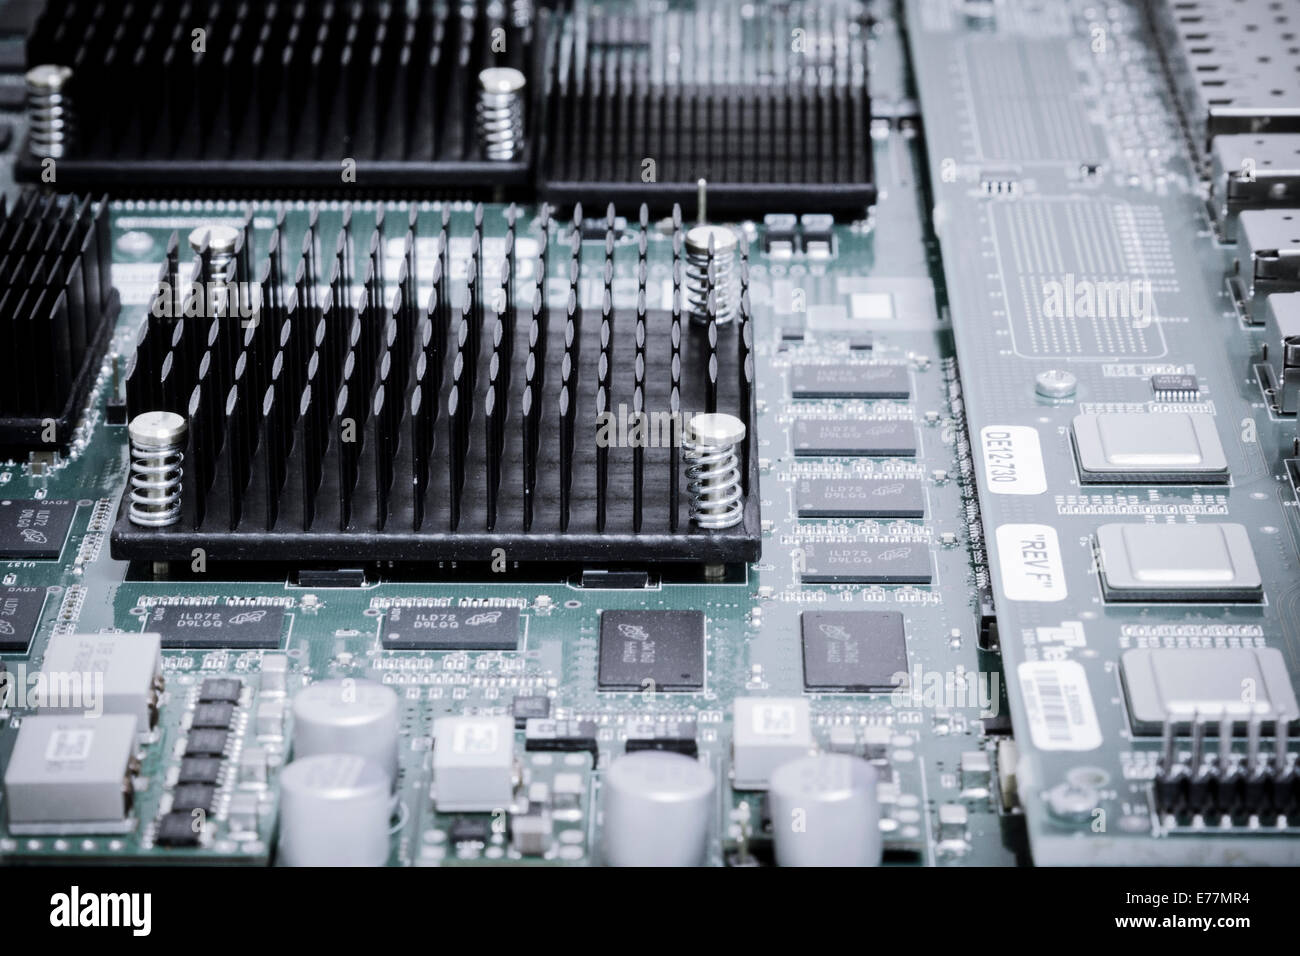 Circuit board of a powerful server computer with chips, capacitors, and heat sinks visible - Stock Image